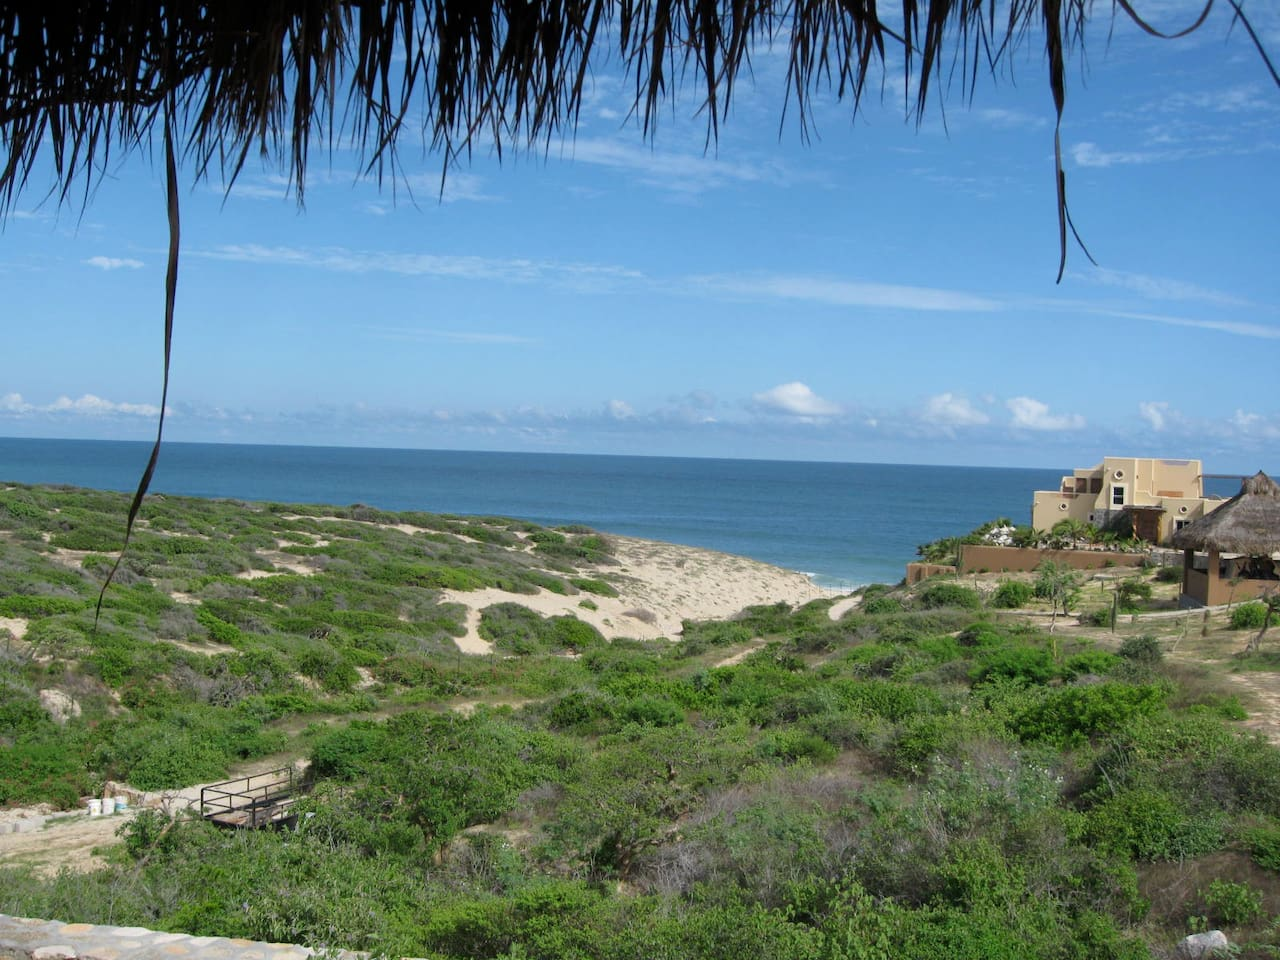 View from the casita with path to the beach and main house on the right.